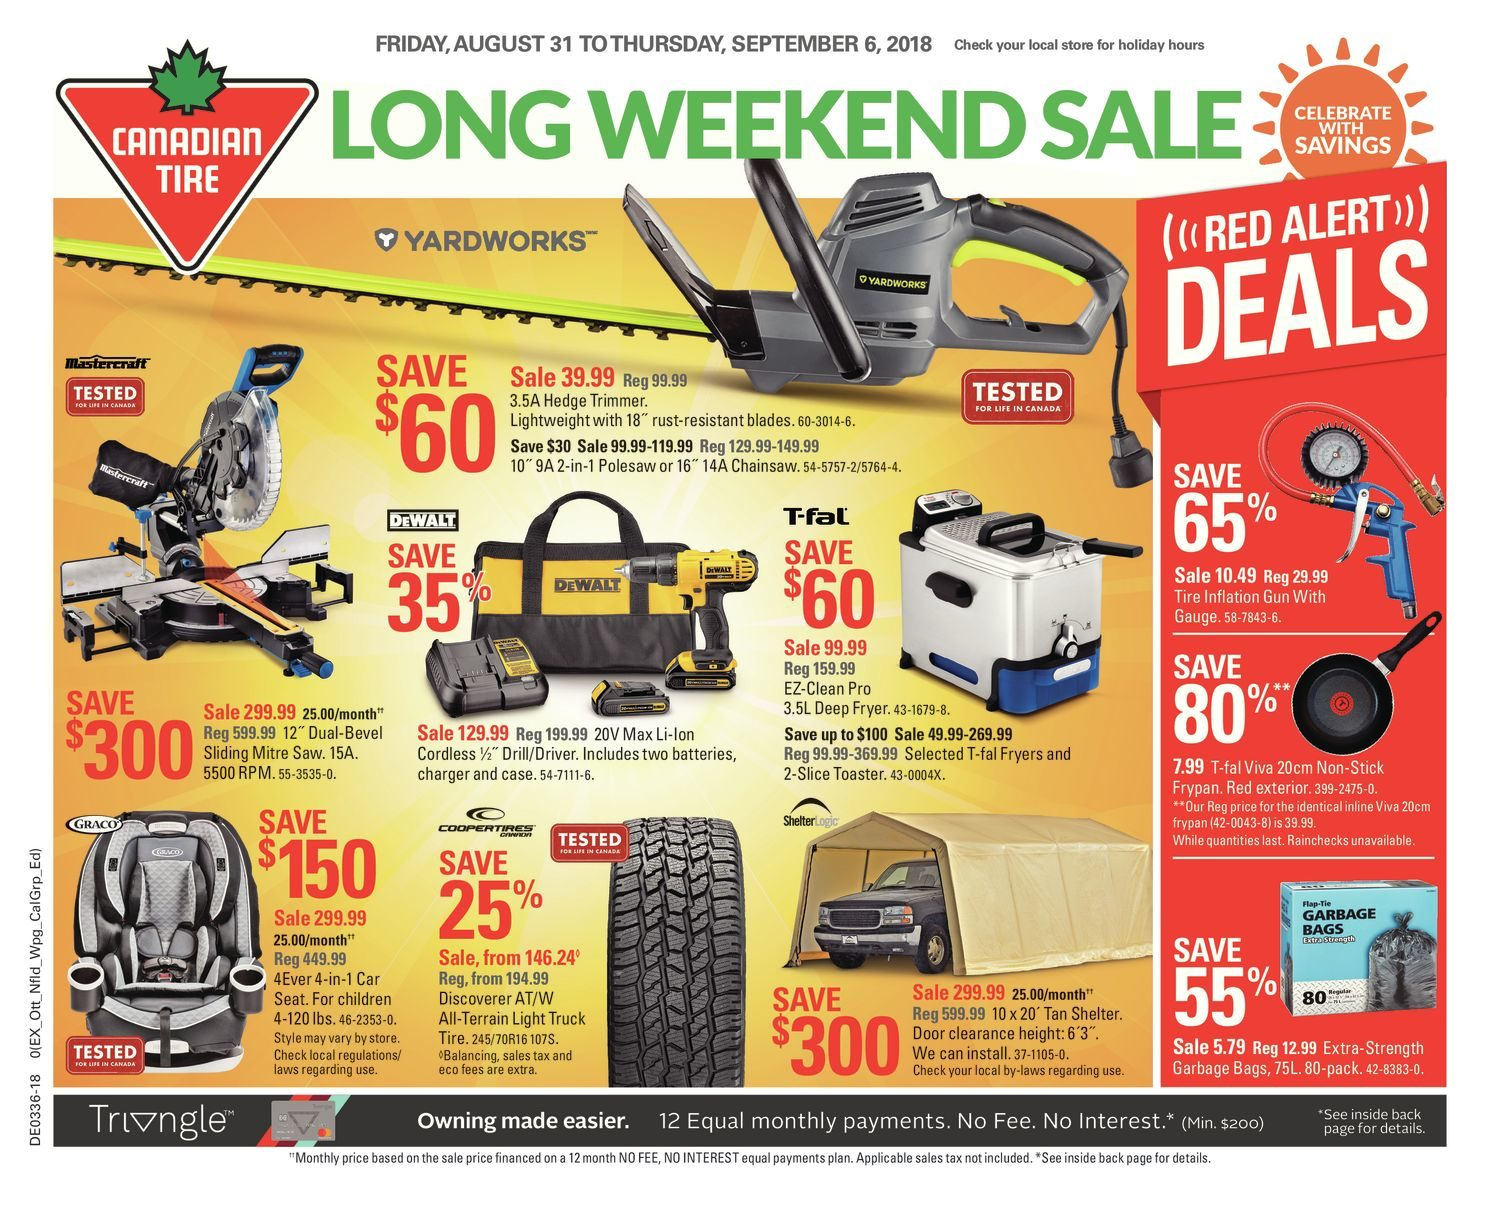 Canadian Tire Weekly Flyer Long Weekend Aug 31 Sep 6 Redflagdeals Com